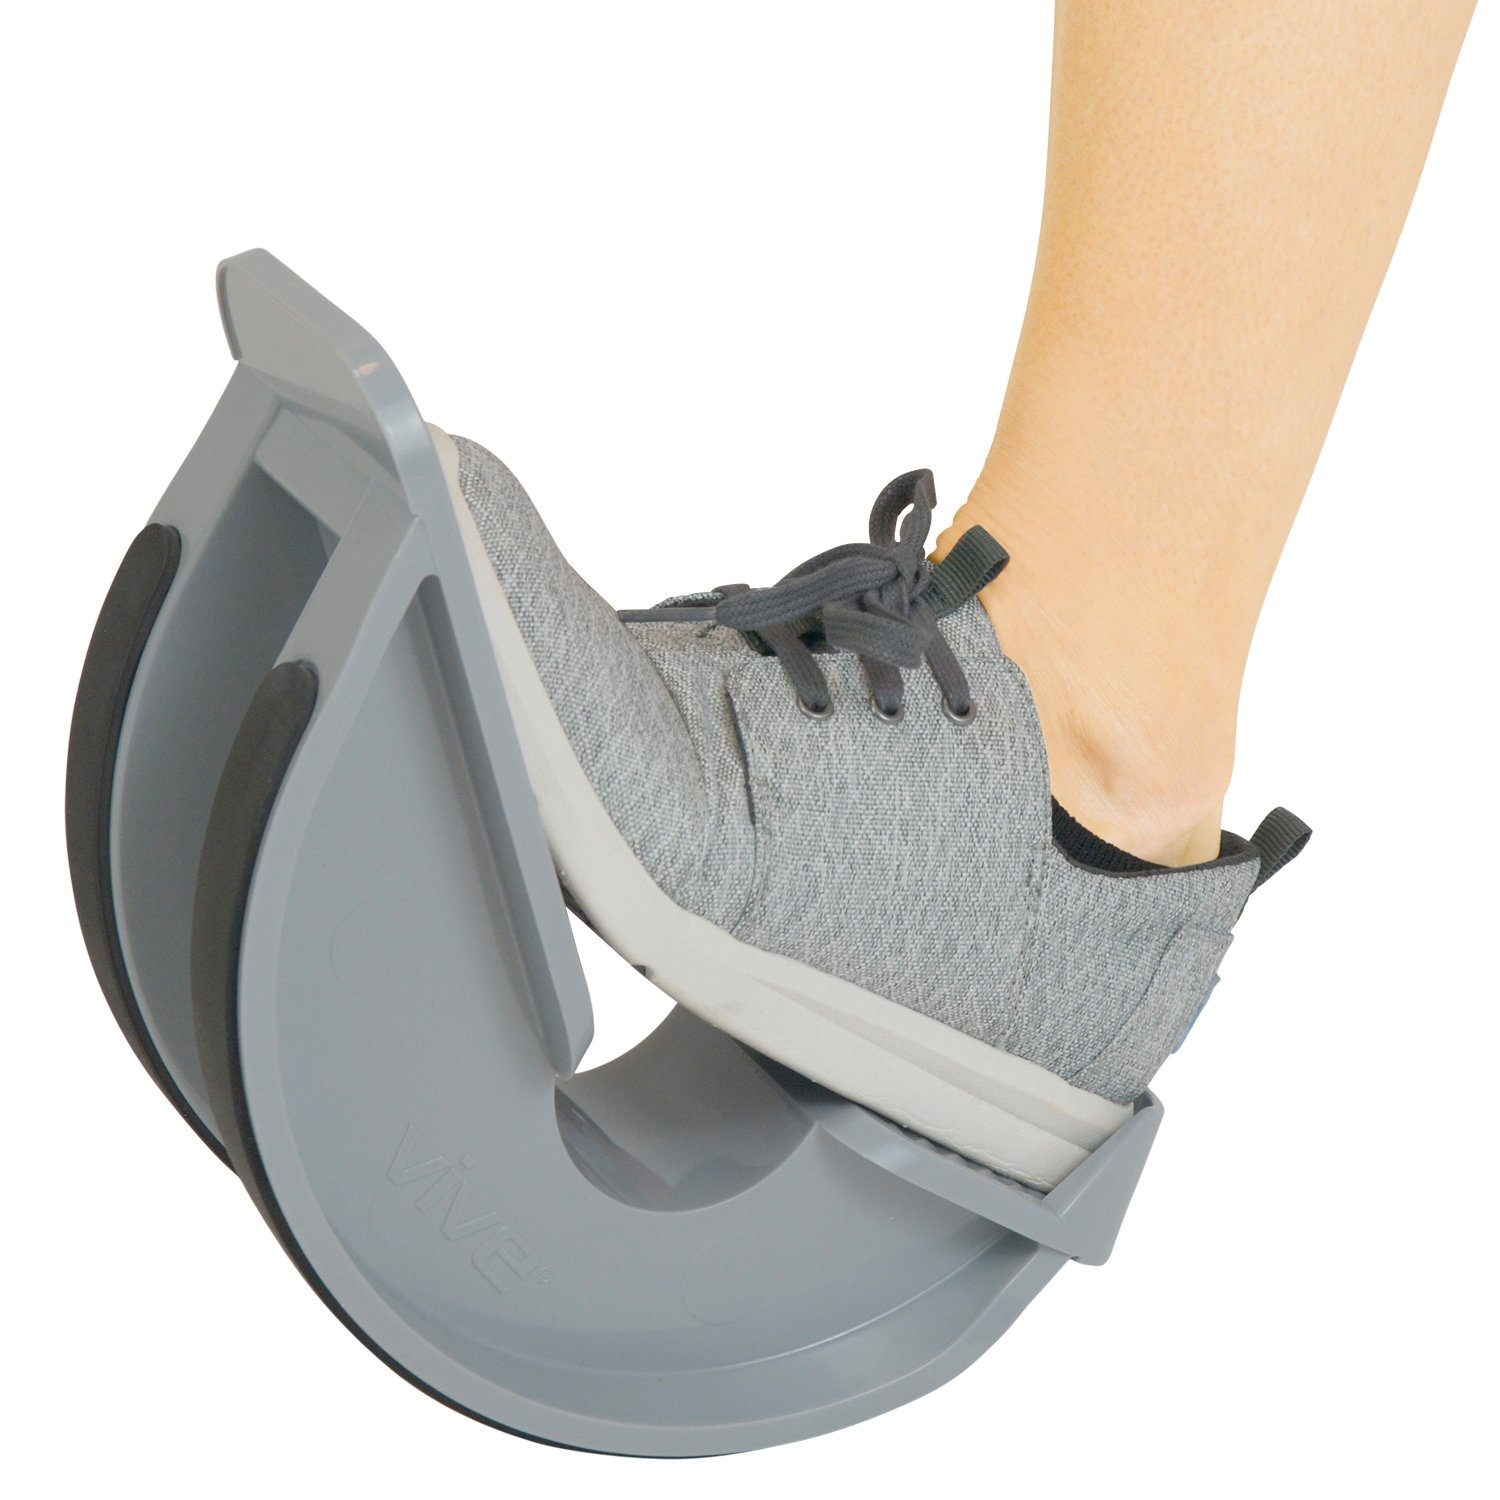 VIVE Foot Rocker - Calf Stretcher for Achilles Tendinitis, Heel, Feet, Shin Splint, Plantar Fasciitis Pain Relief - Stretches Strained Leg Muscle - Ankle Wedge Stretch Improves Flexibility (Single) by Vive Health